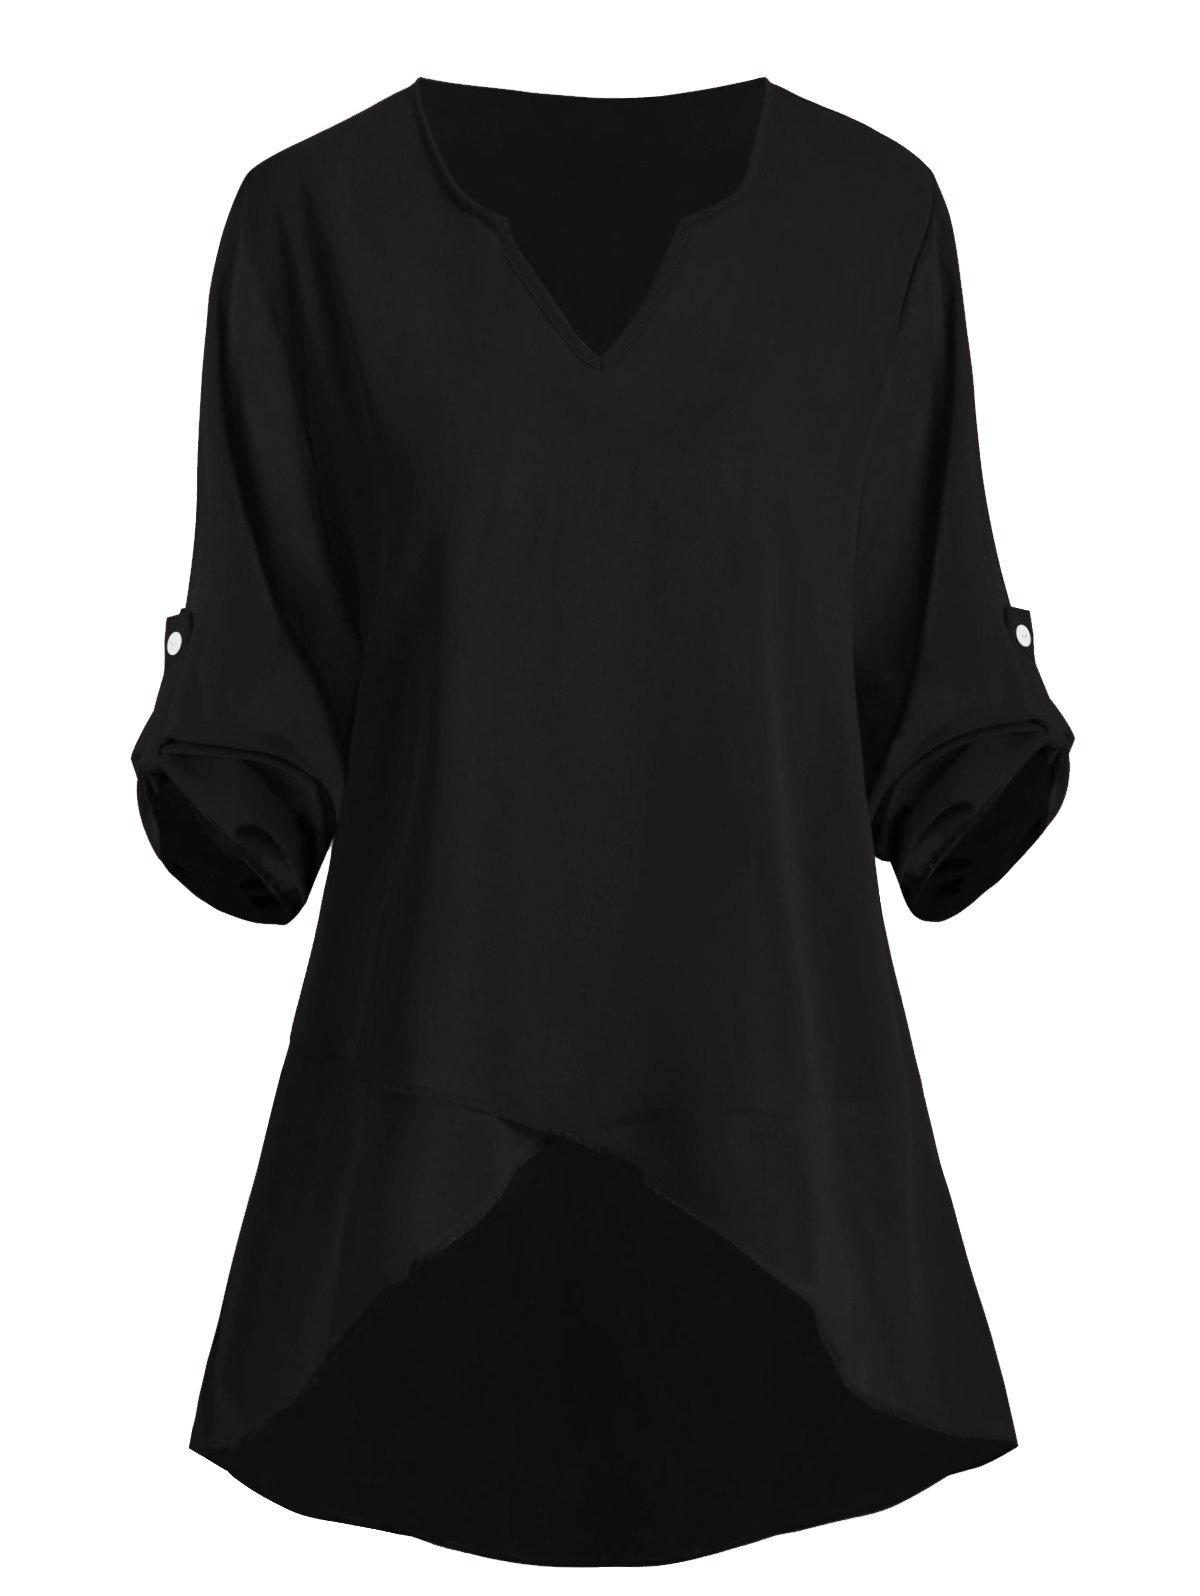 Fashion Buttoned Sleeve Tabs High Low V Neck Plus Size Blouse